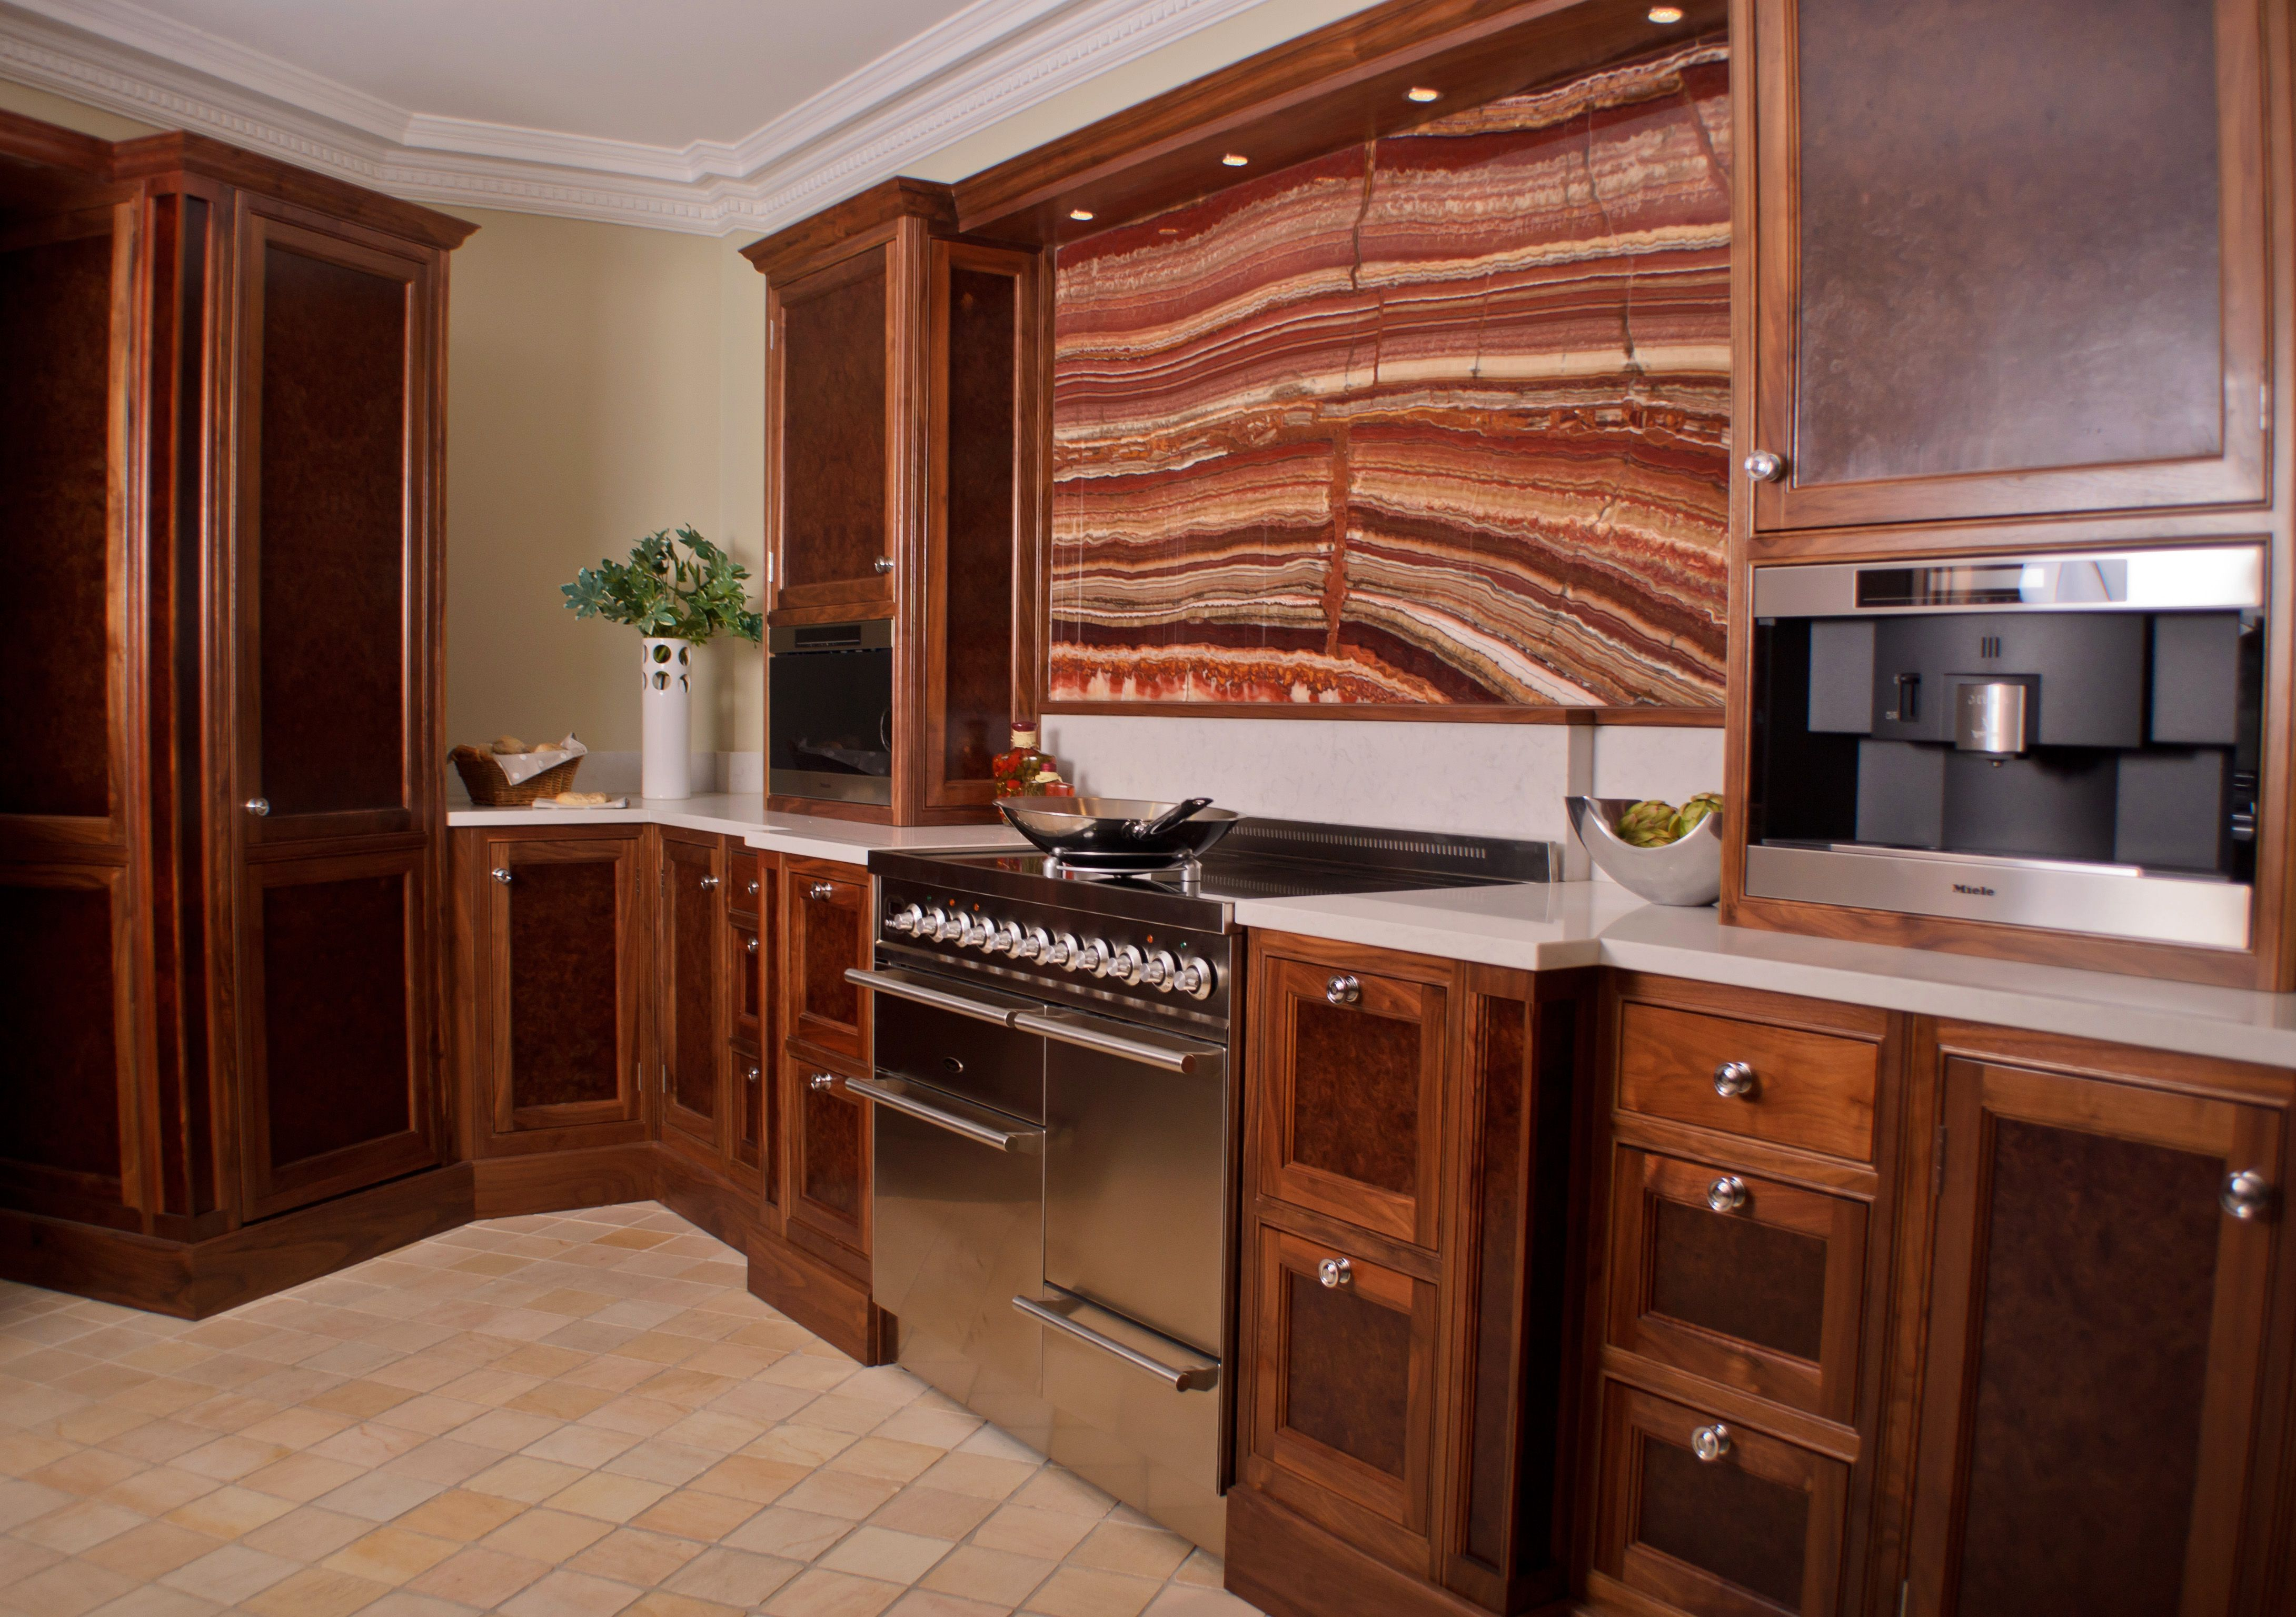 Charles Yorke Stanmore Edwardian Kitchen Furniture   Our Showroom in ...